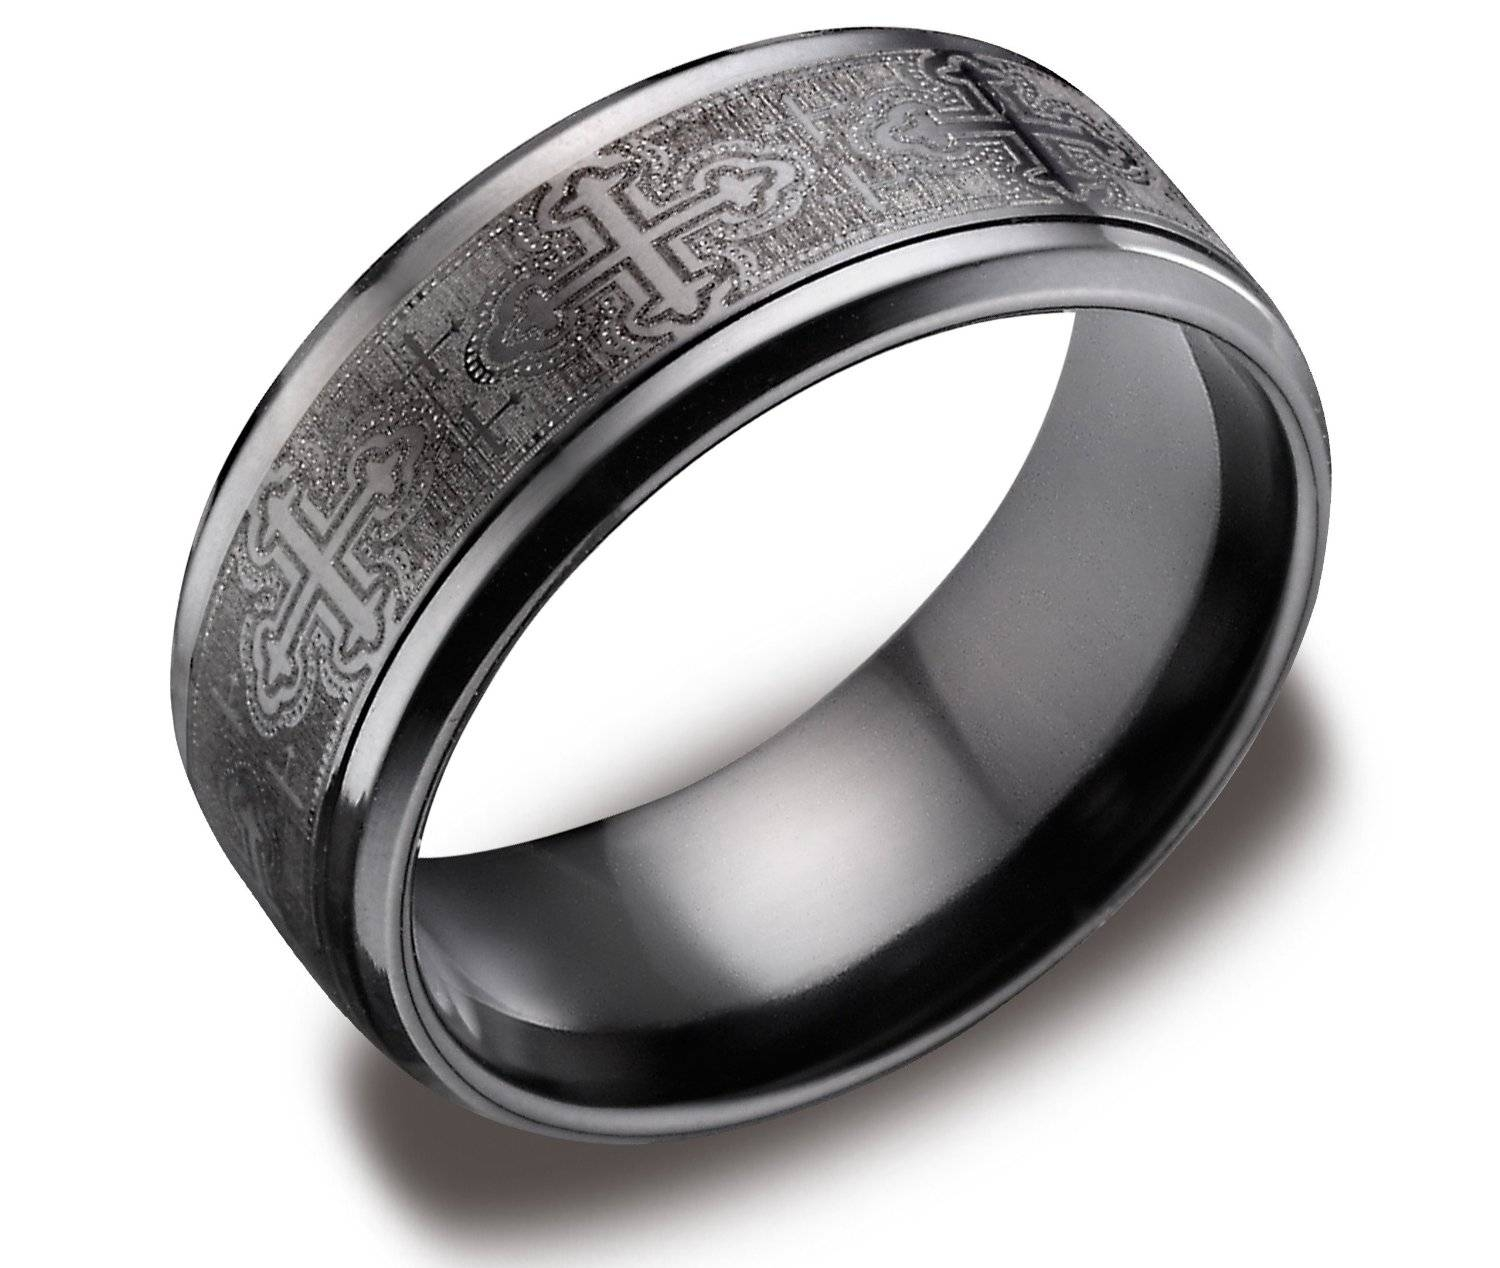 Mens Titanium Wedding Bands Are No Less Appealing Than Gold Throughout Black And Silver Men's Wedding Bands (View 3 of 15)